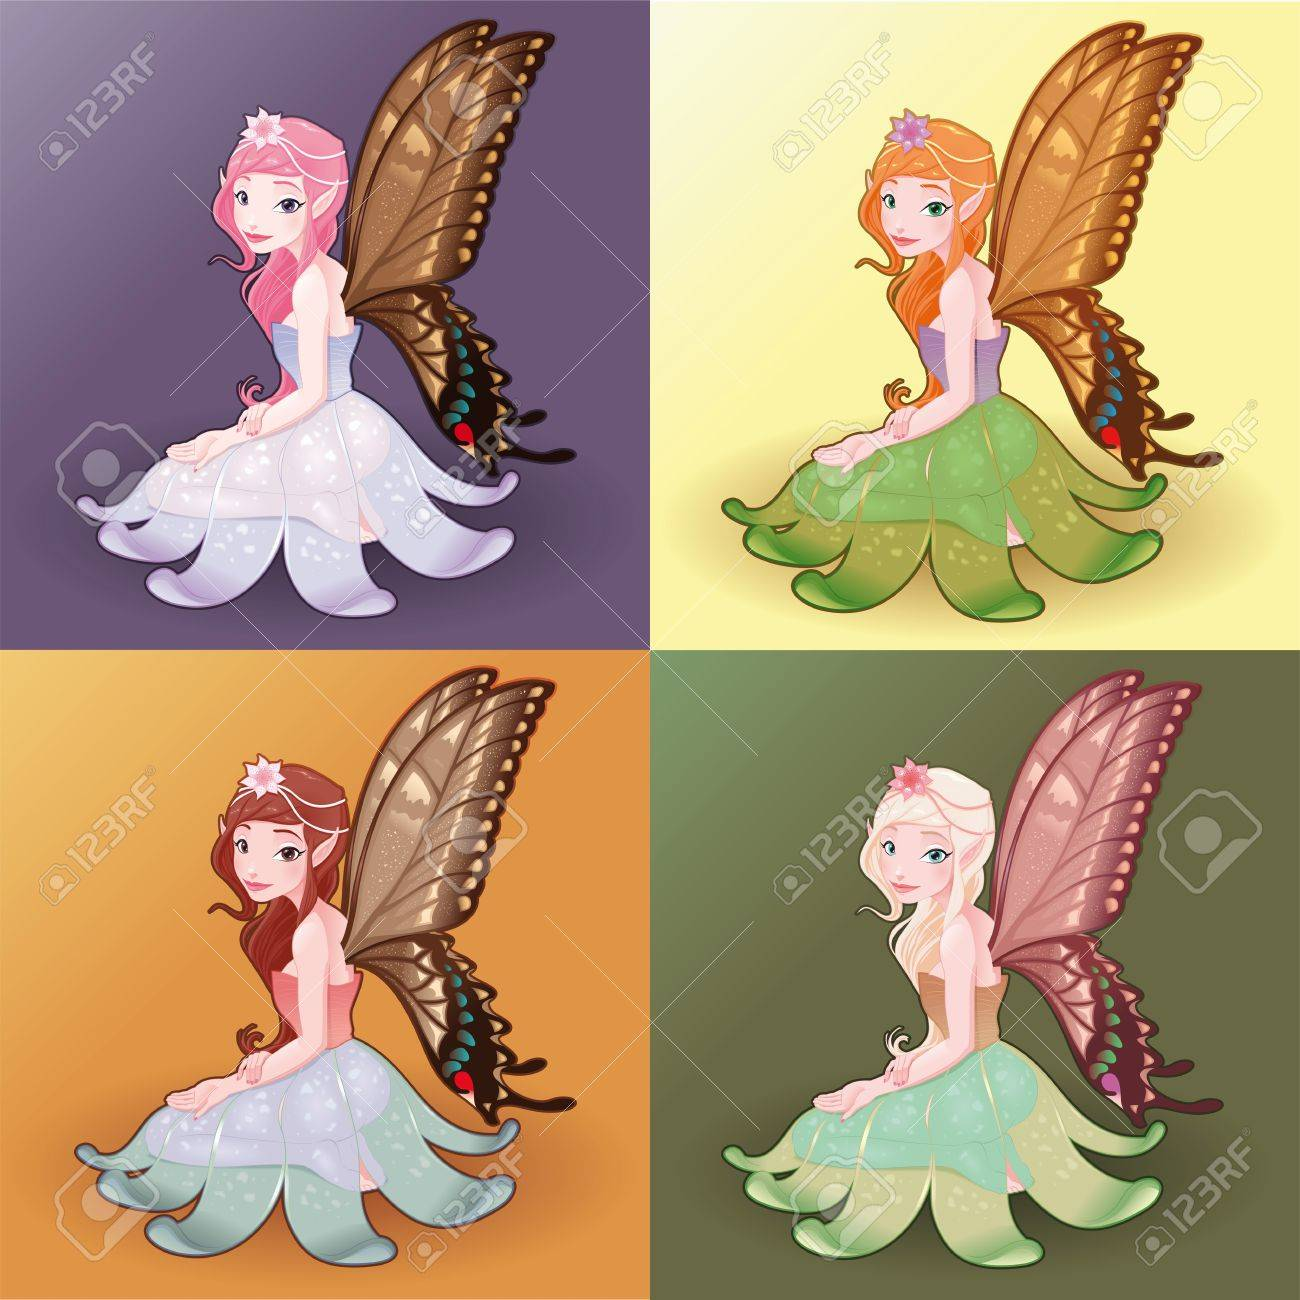 Young fairies. Funny cartoon and illustration. Stock Vector - 12978039